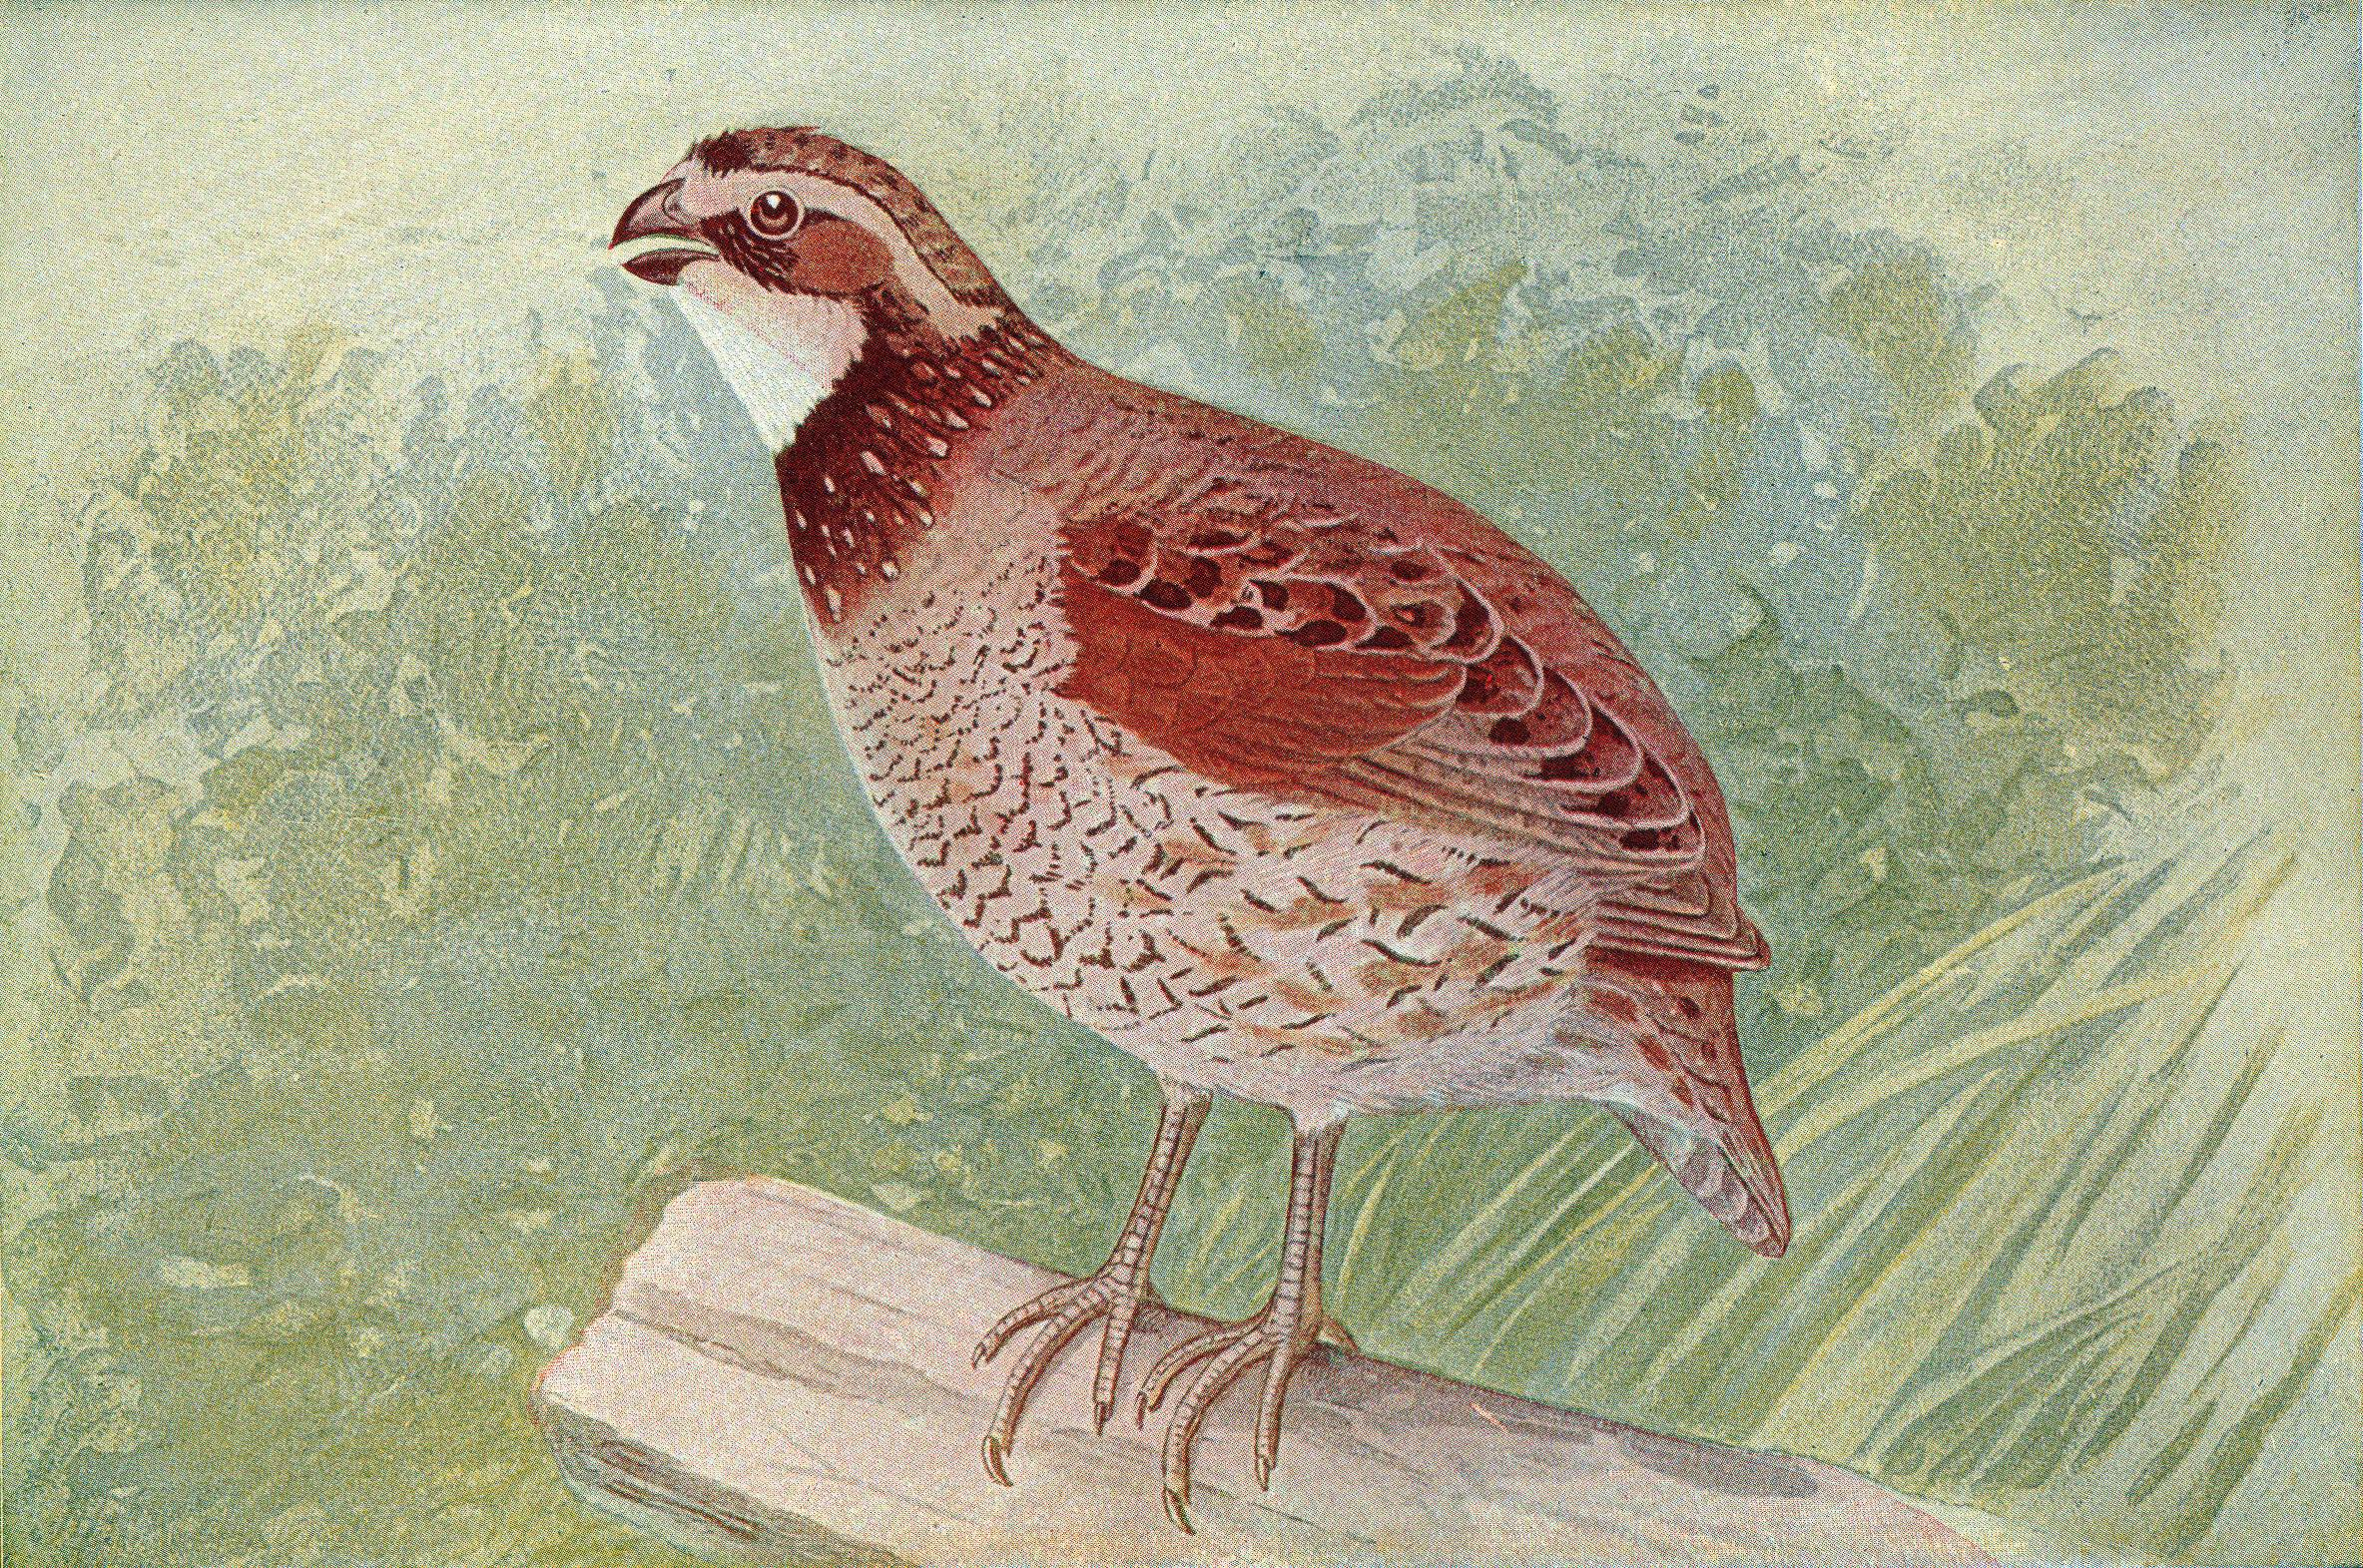 http://upload.wikimedia.org/wikipedia/commons/8/84/Quail.jpg